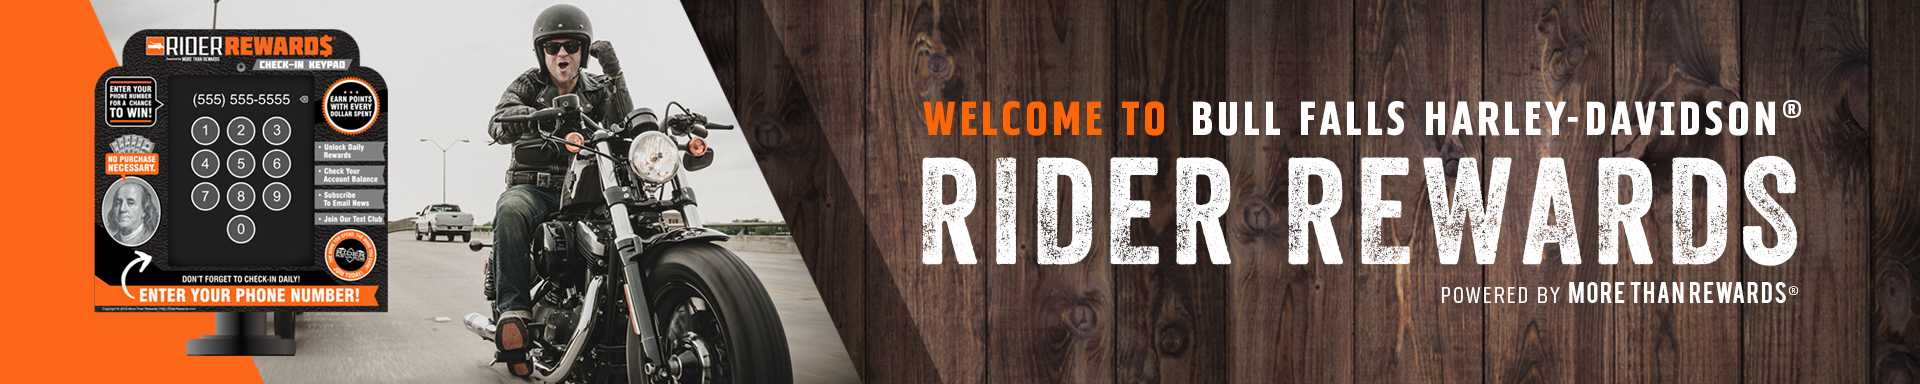 Rider Rewards Program at Bull Falls HD